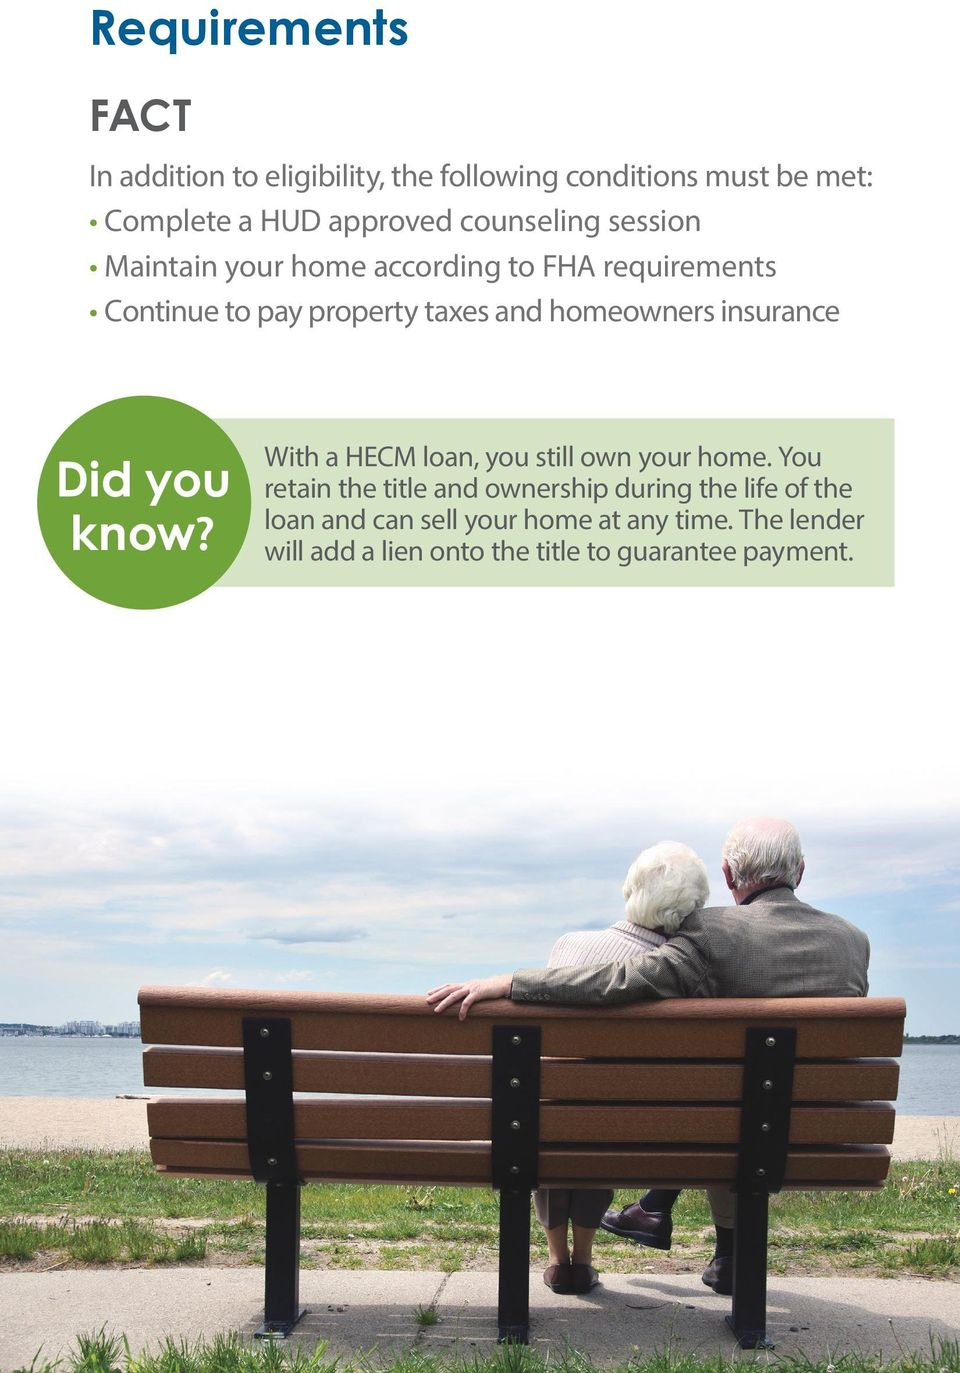 homeowners insurance Did you know? With a HECM loan, you still own your home.